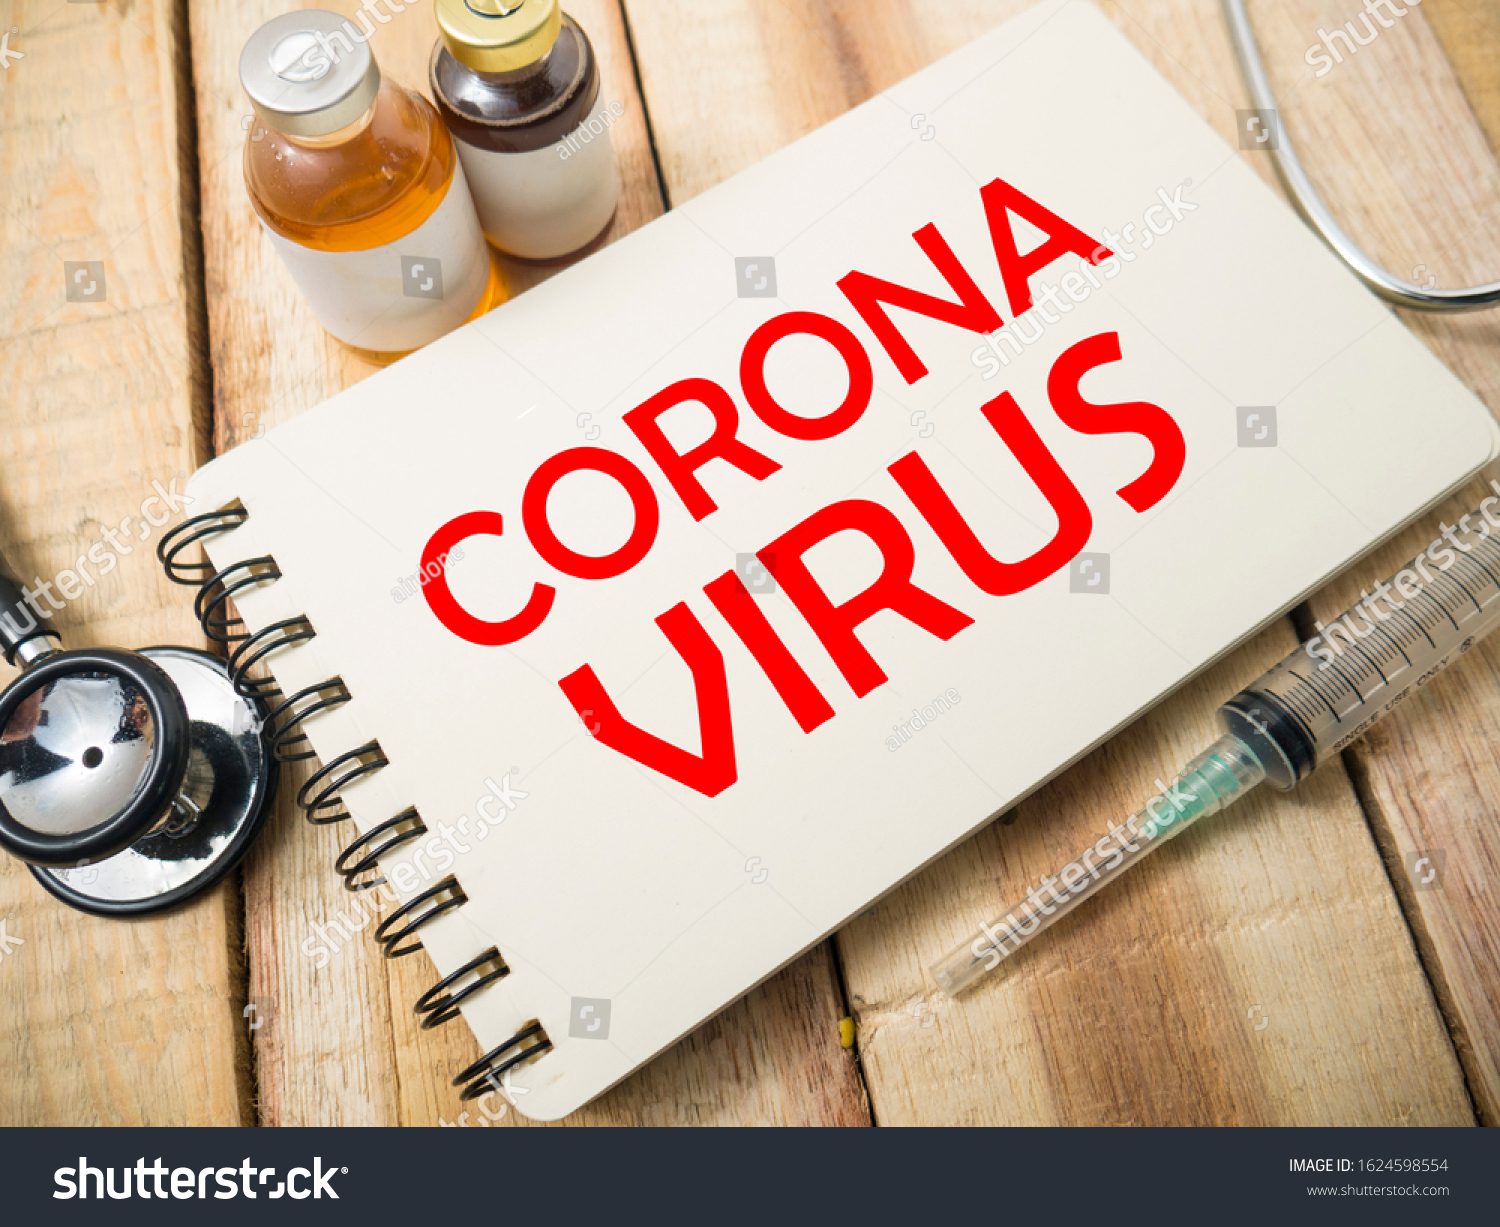 Corona virus, mysterious viral pneumonia in Wuhan, China. Similar to MERS CoV or SARS virus (severe acute respiratory syndrome). Health care and medical concept #1624598554